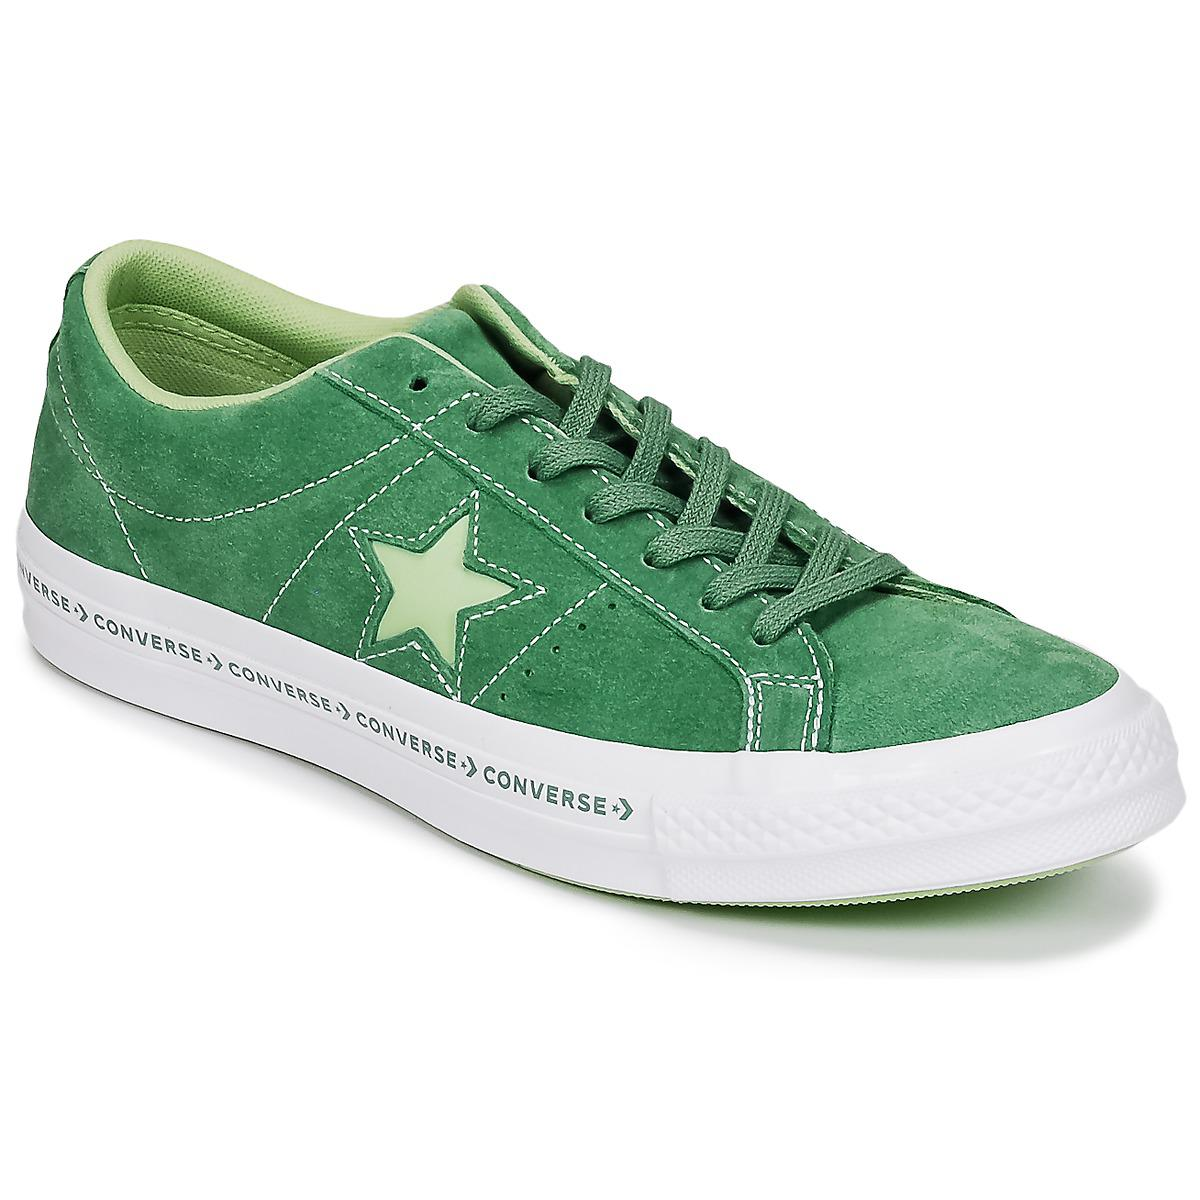 8530ebd8e242 Converse One Star Shoes (trainers) in Green for Men - Save 12% - Lyst